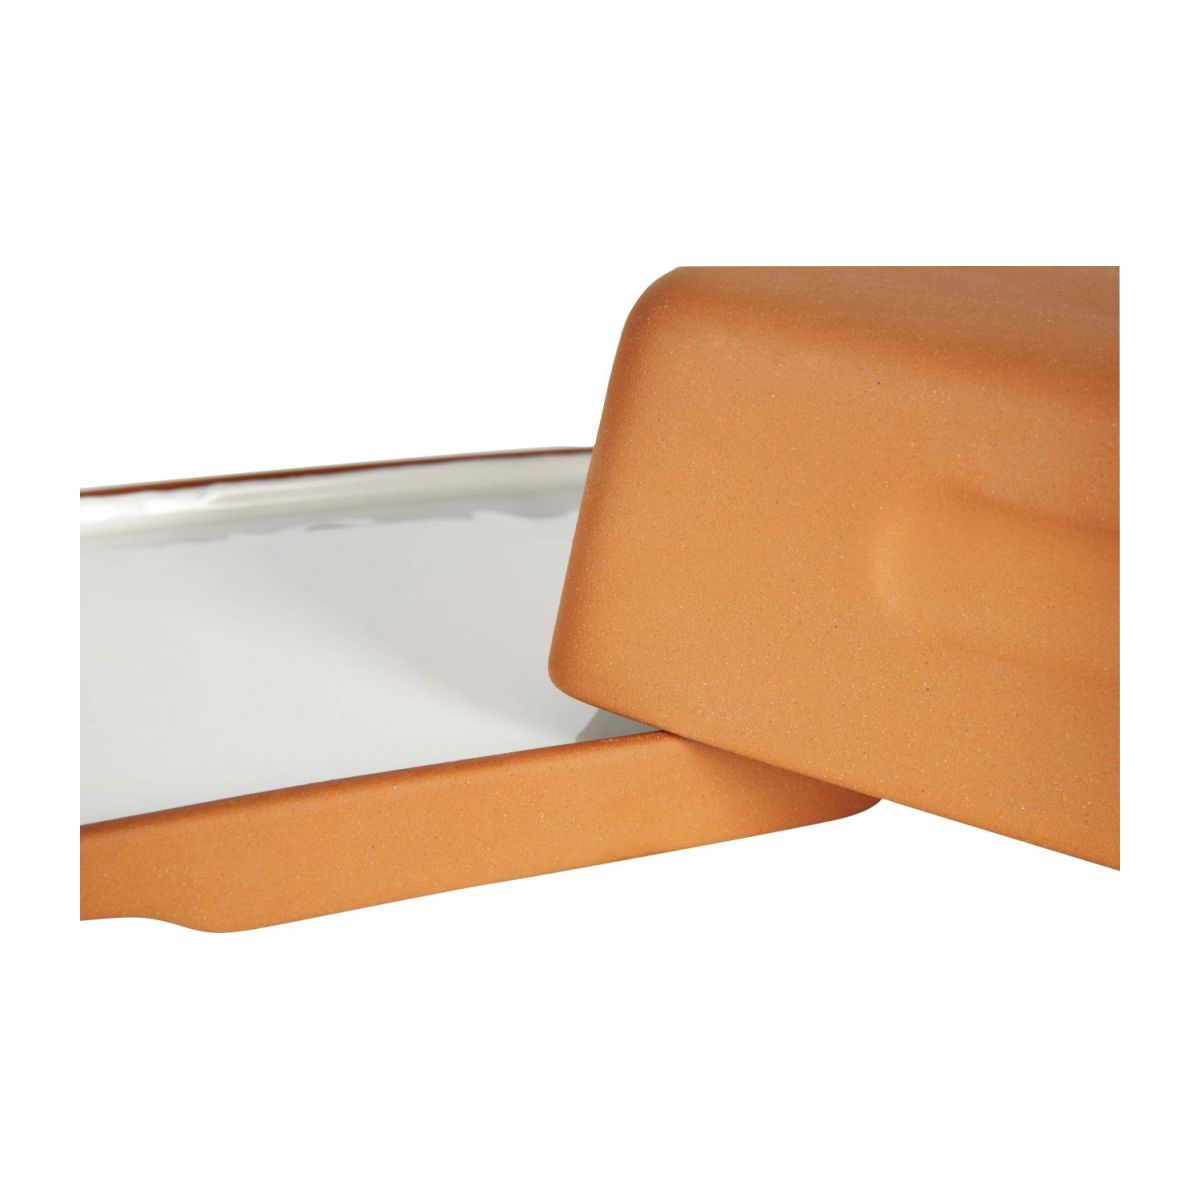 Butter dish n°6